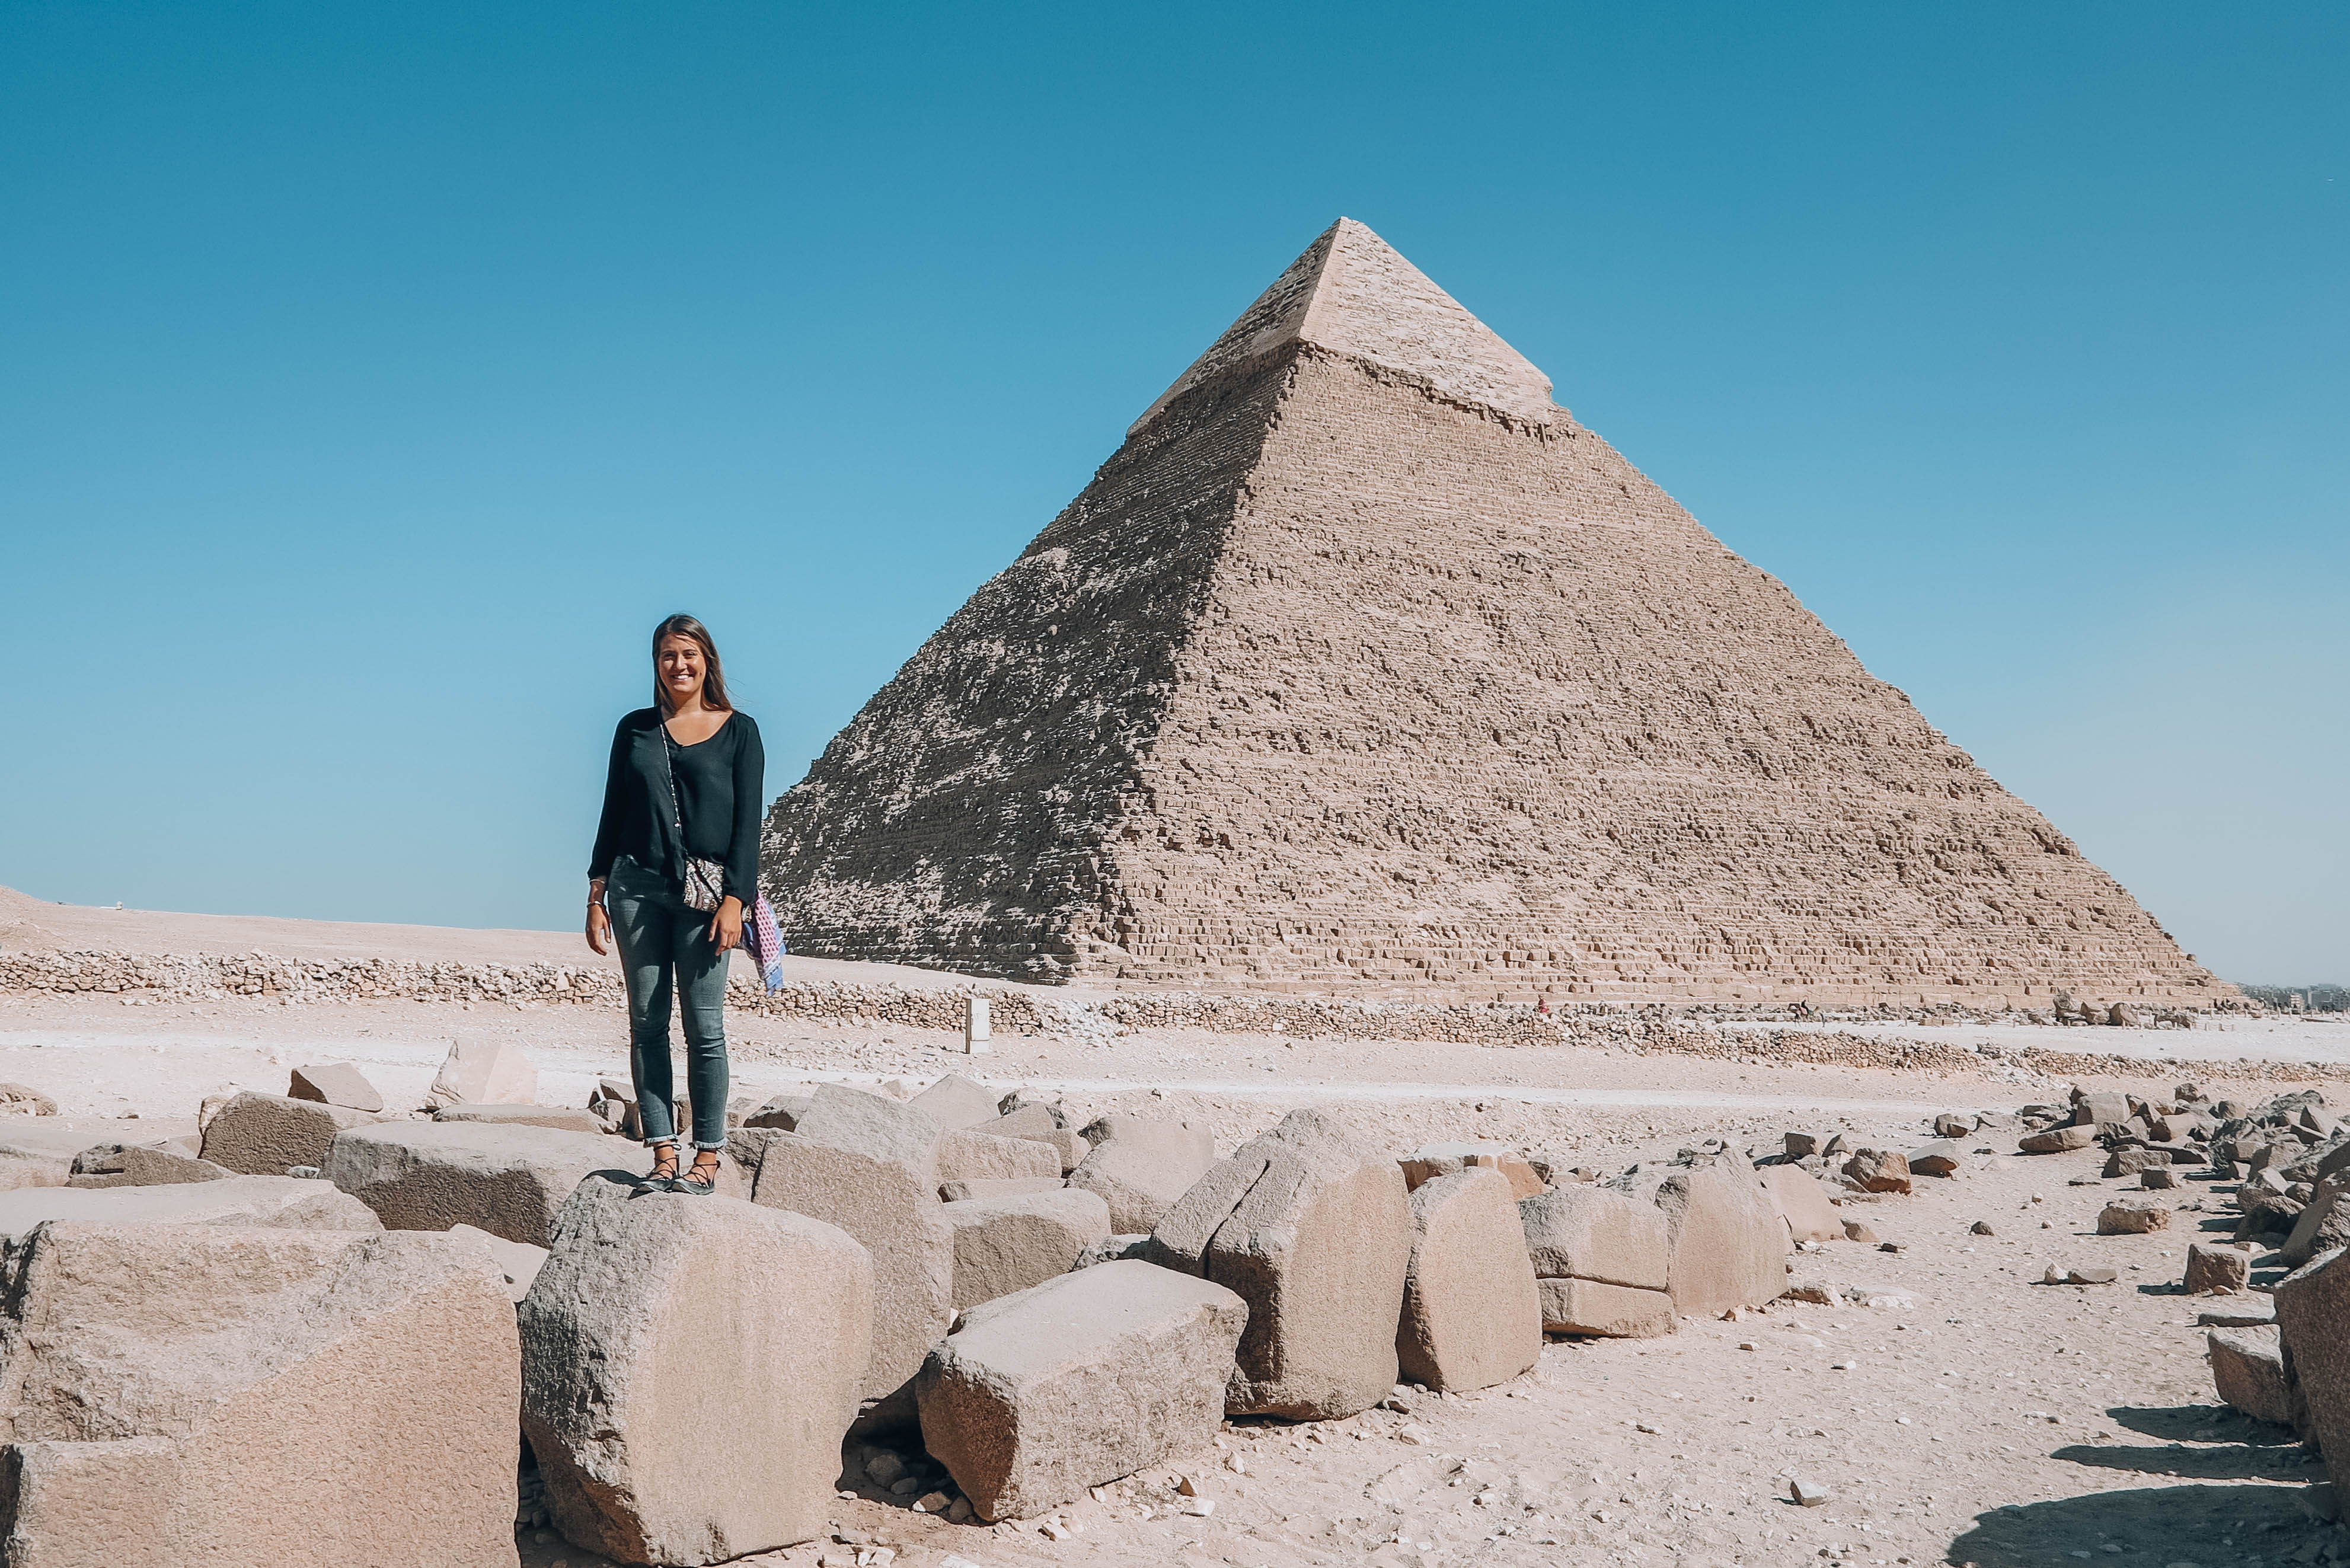 In front of pyramids